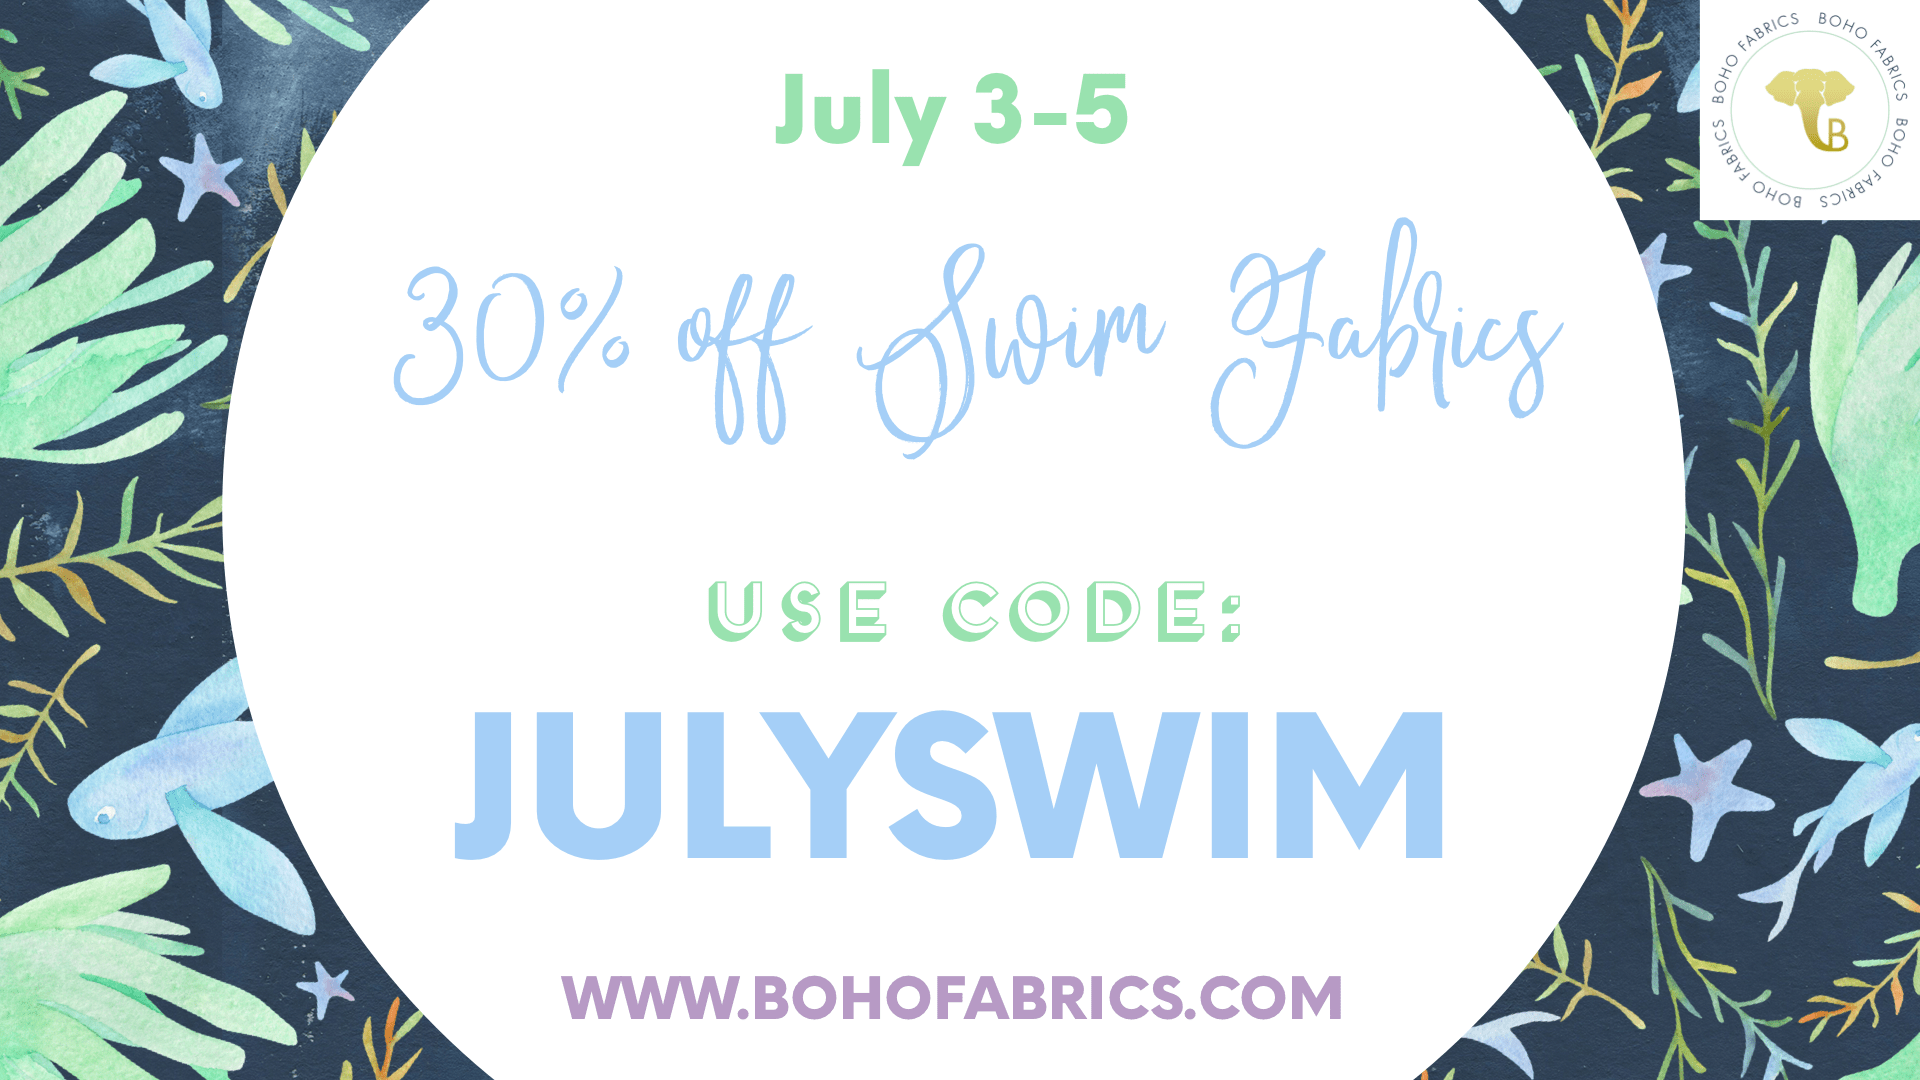 Boho Fabrics 4th of July Sale